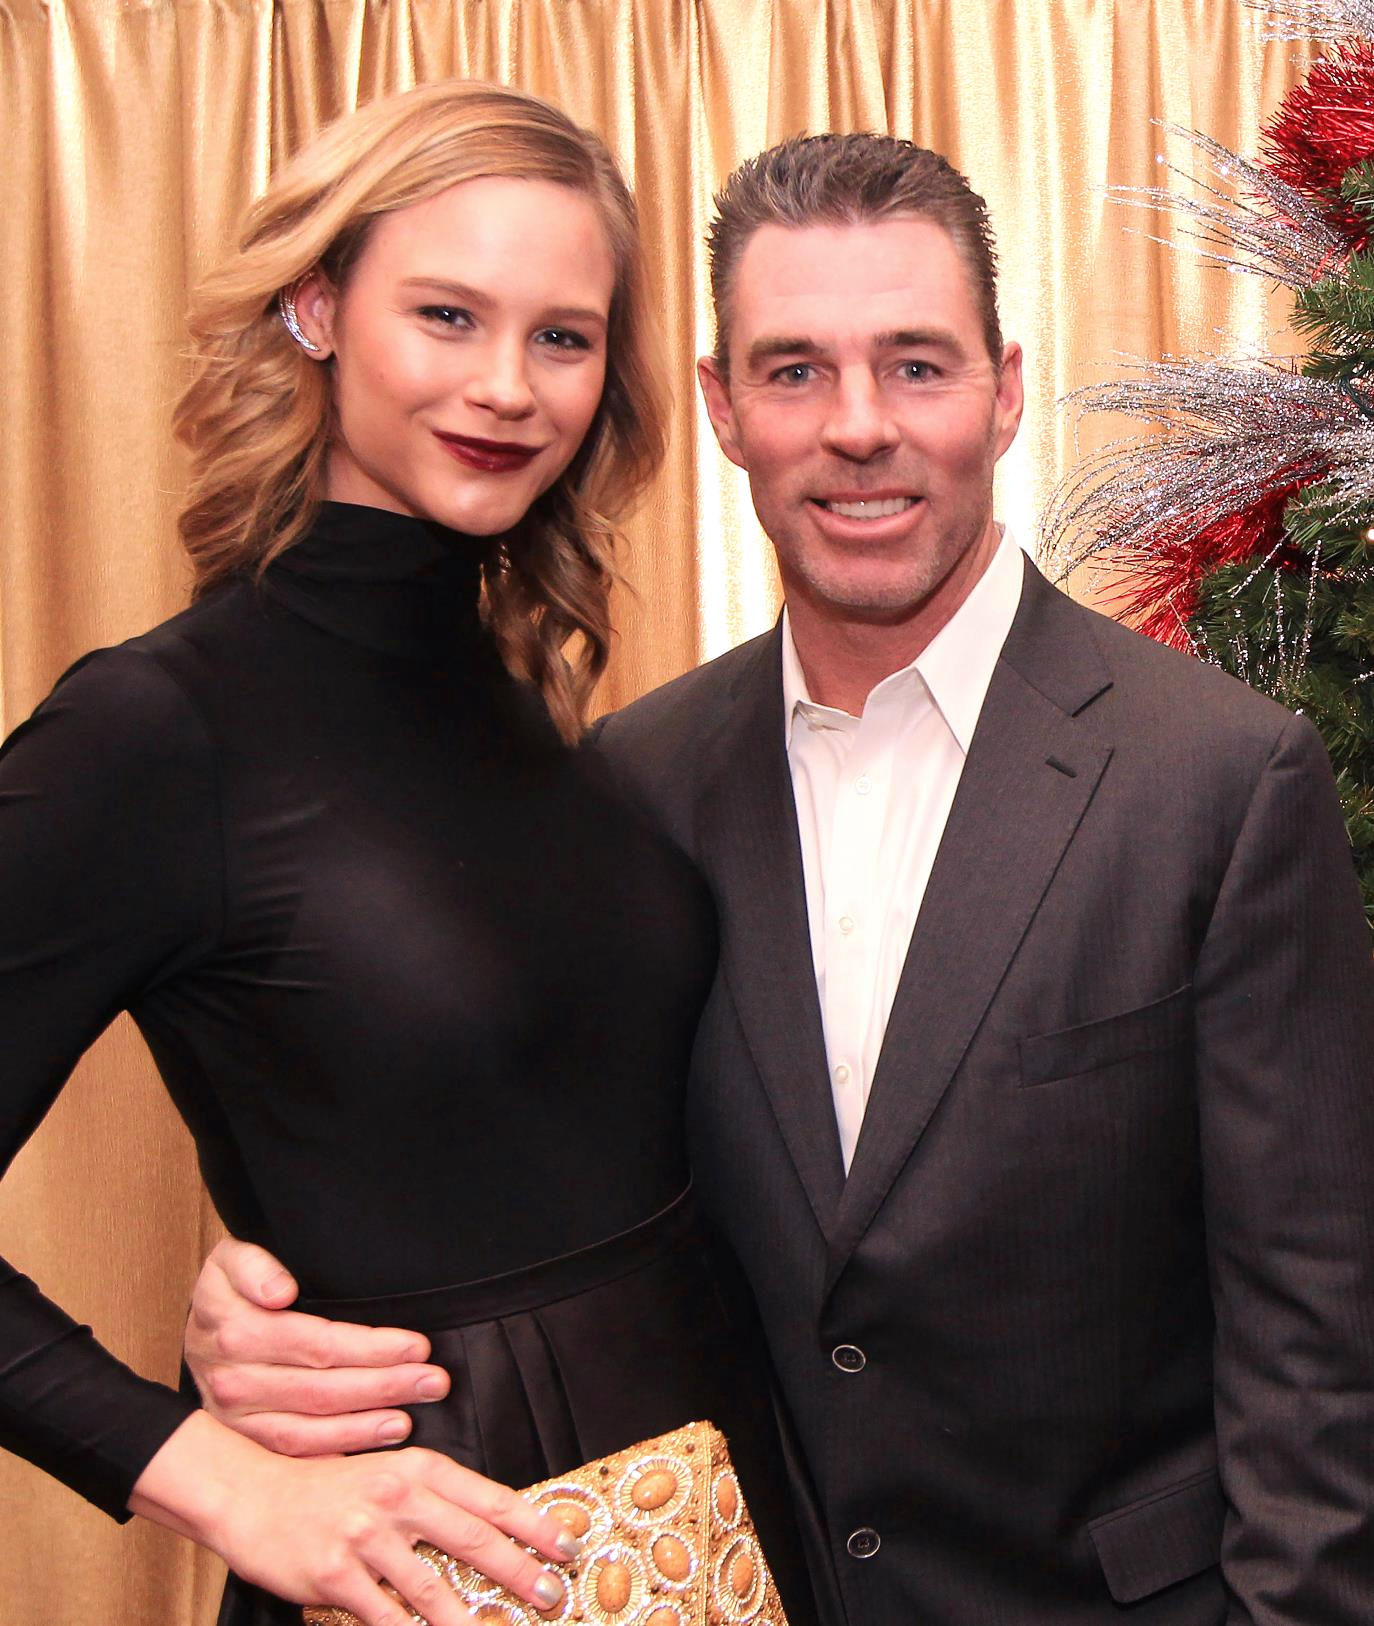 Rhoc Meghan King Edmonds Accuses Jim Of Dating Her Former Friend